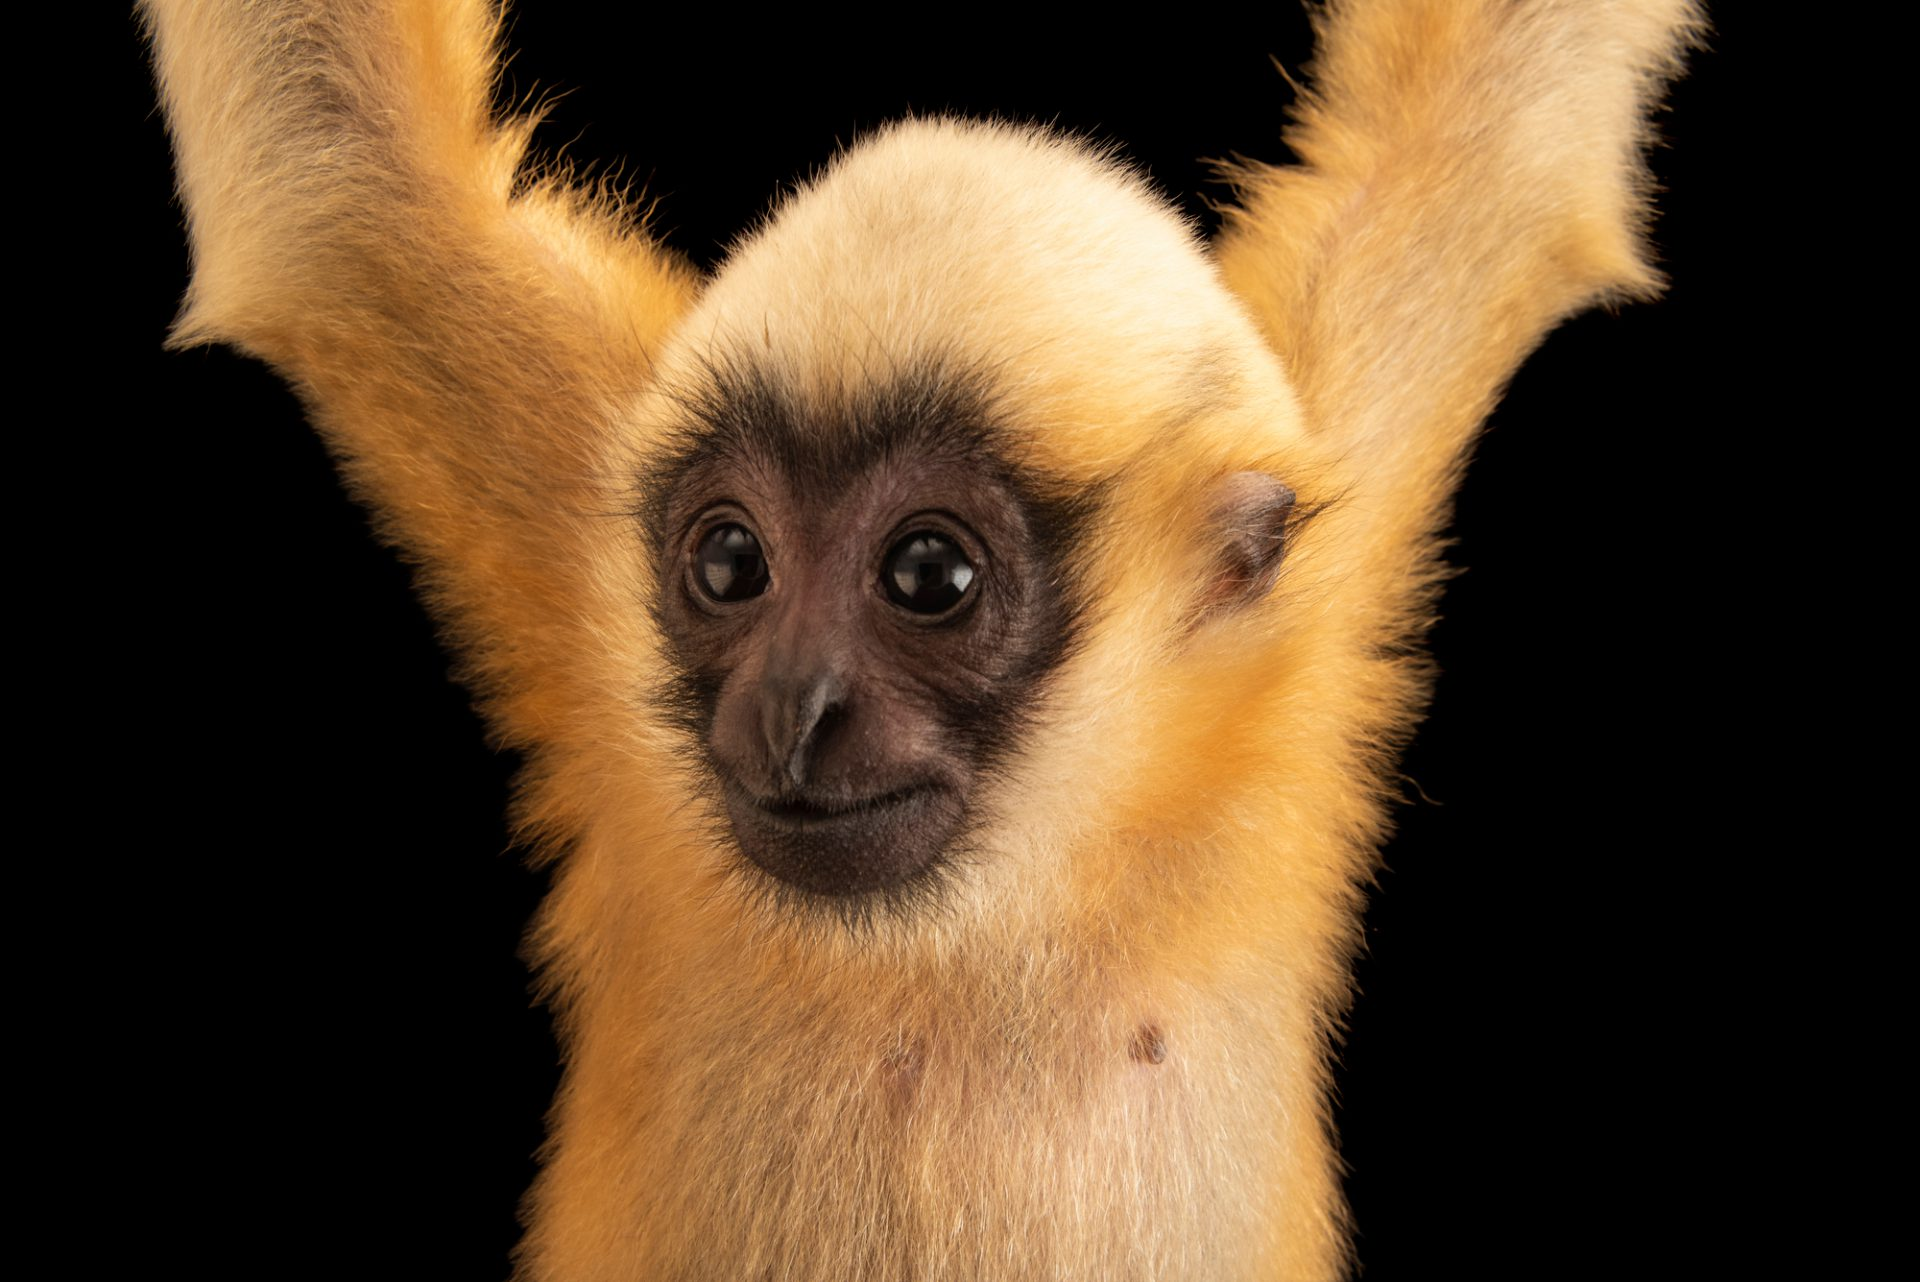 Photo: A critically endangered juvenile white cheeked-gibbon (Nomascus leucogenys) at Omaha's Henry Doorly Zoo and Aquarium.